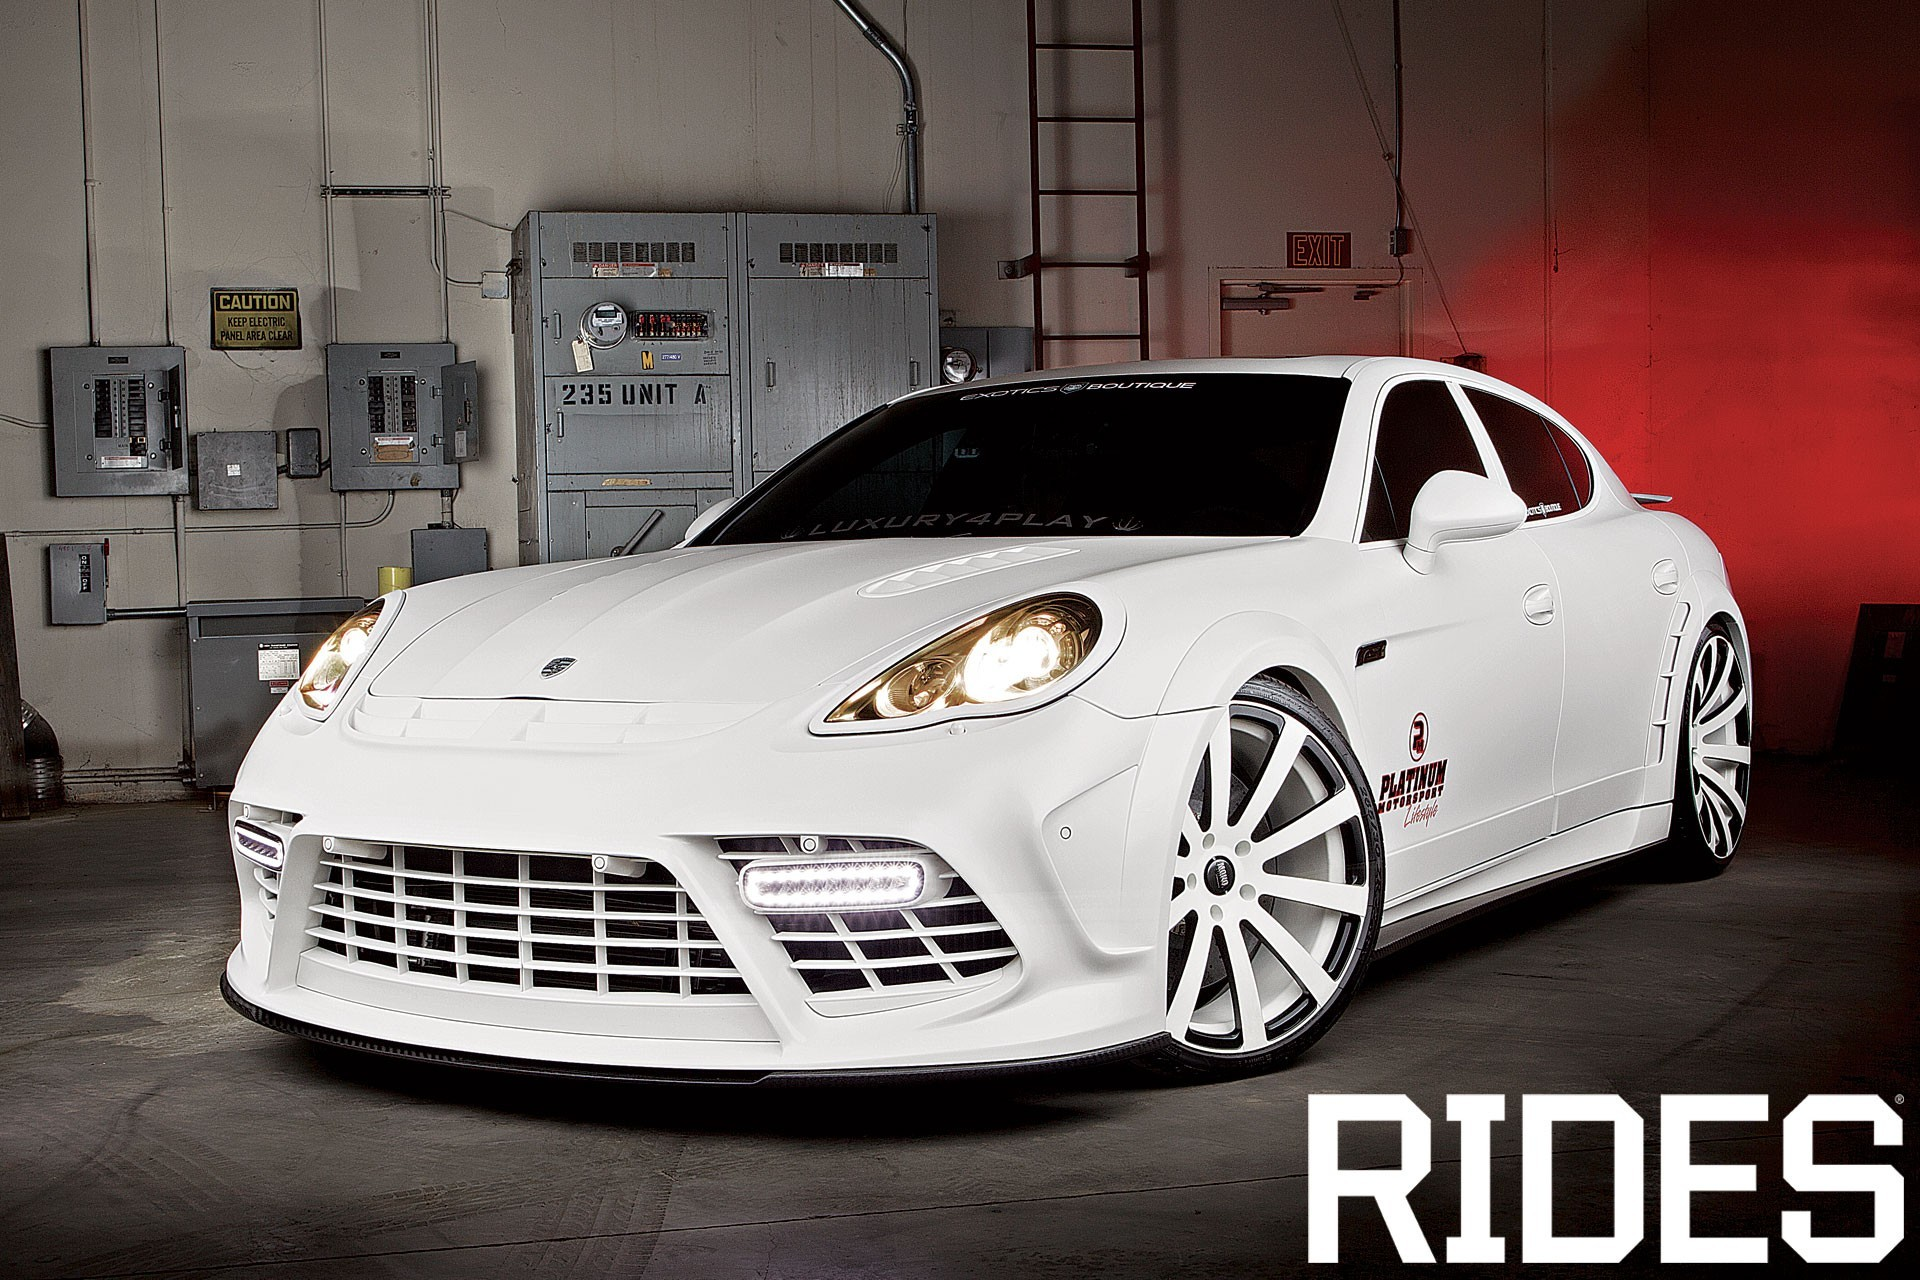 white turbo tuning wheels HD Wallpaper